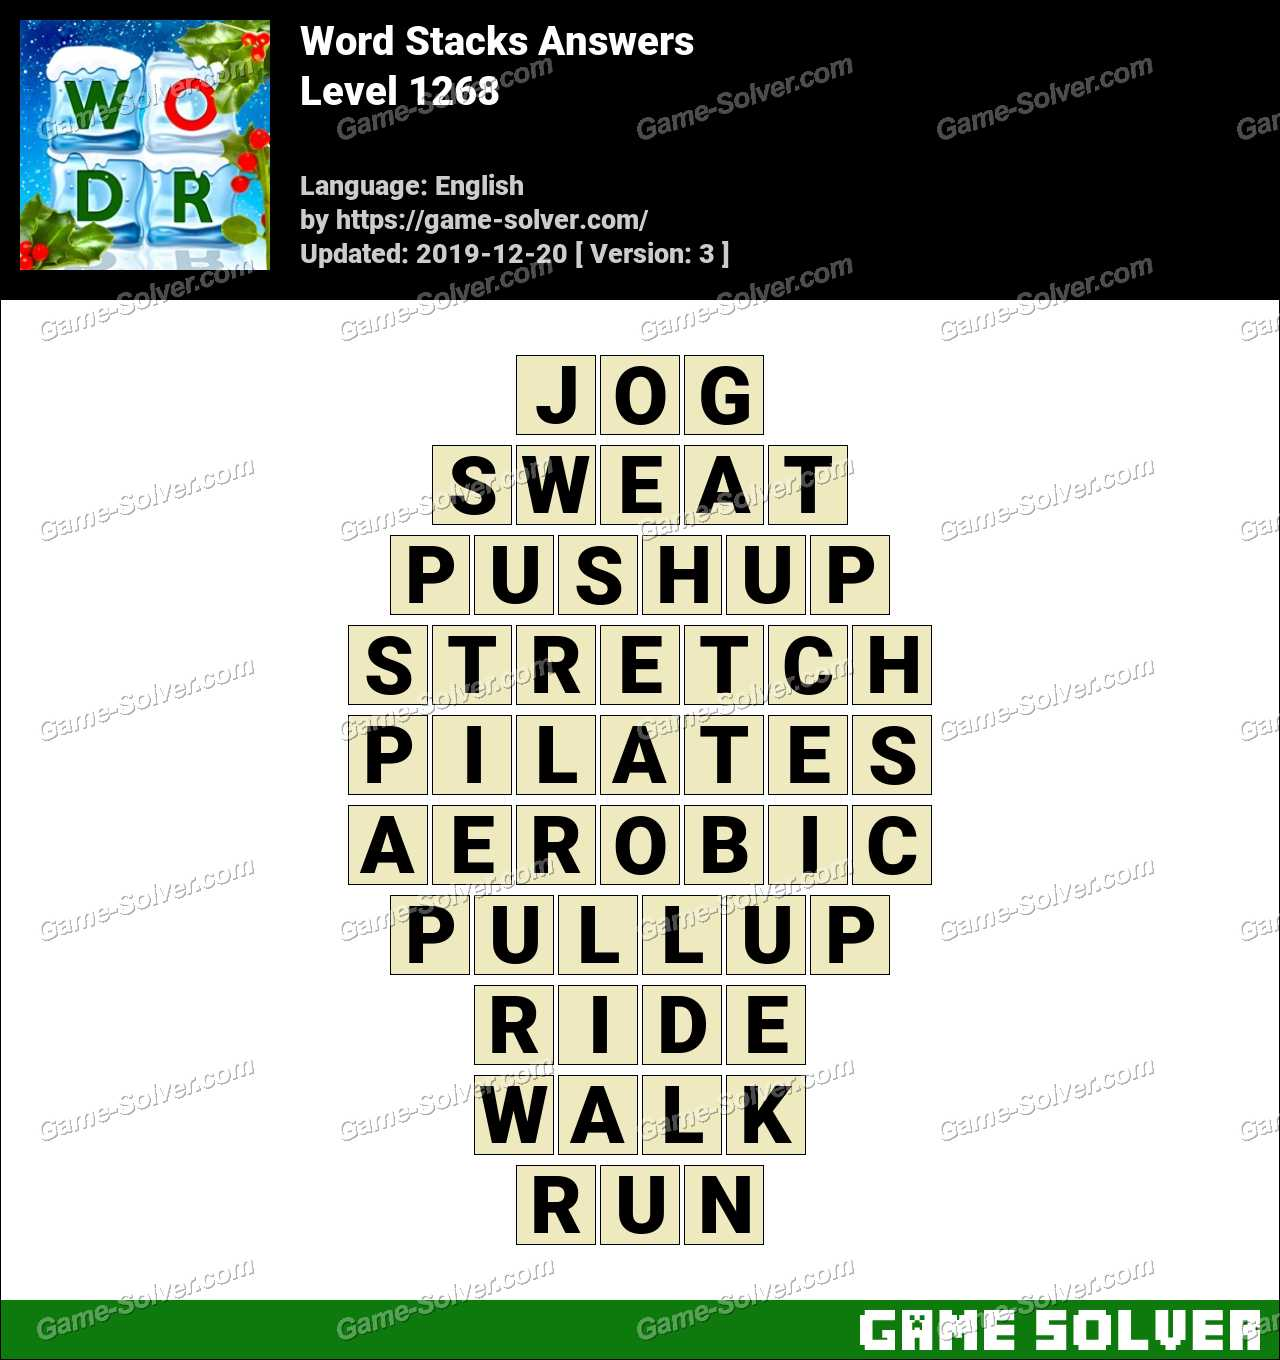 Word Stacks Level 1268 Answers